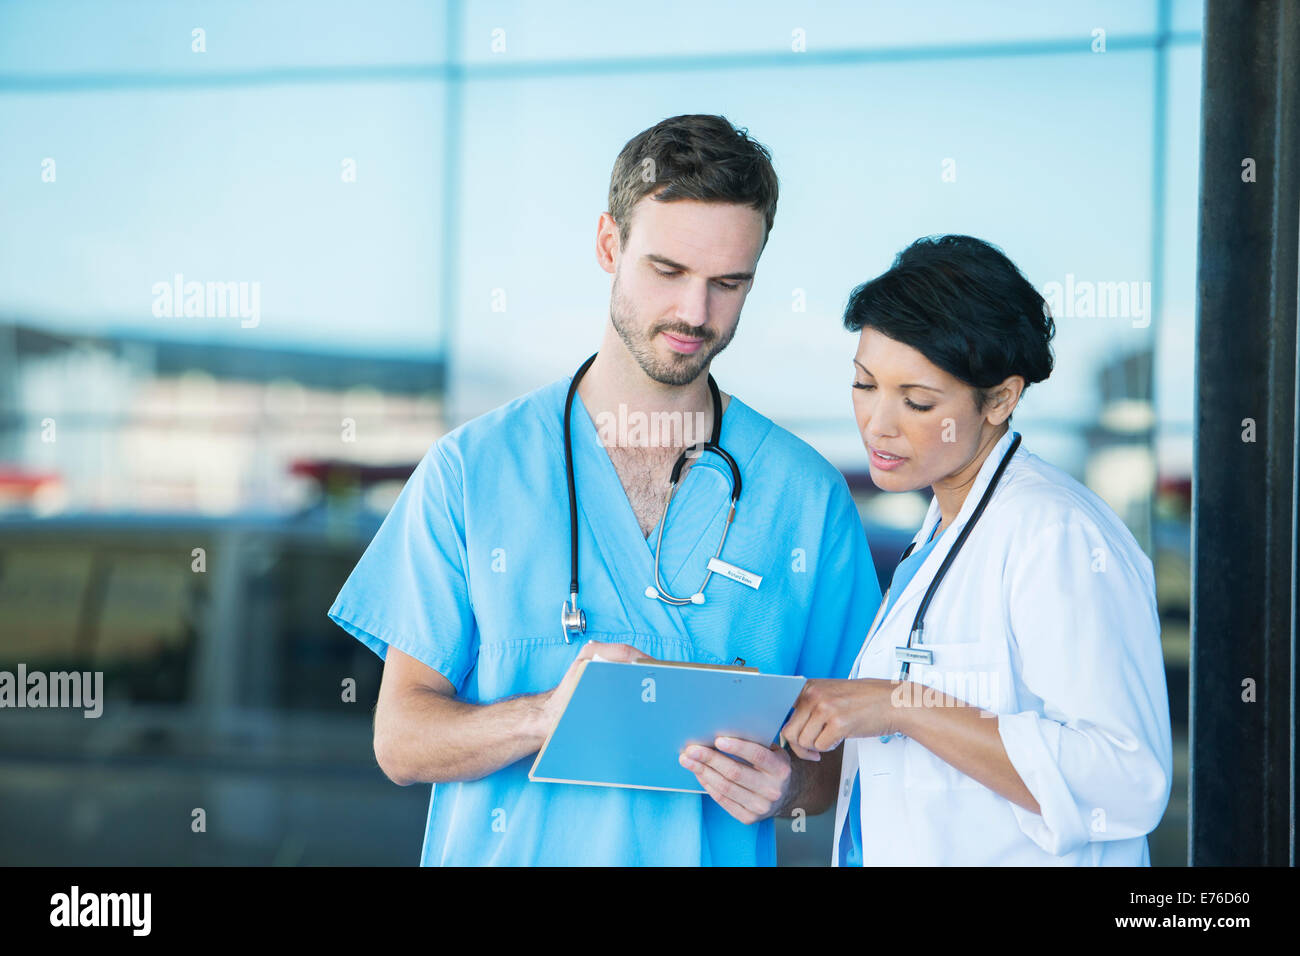 Doctor and nurse reading medical chart outdoors - Stock Image